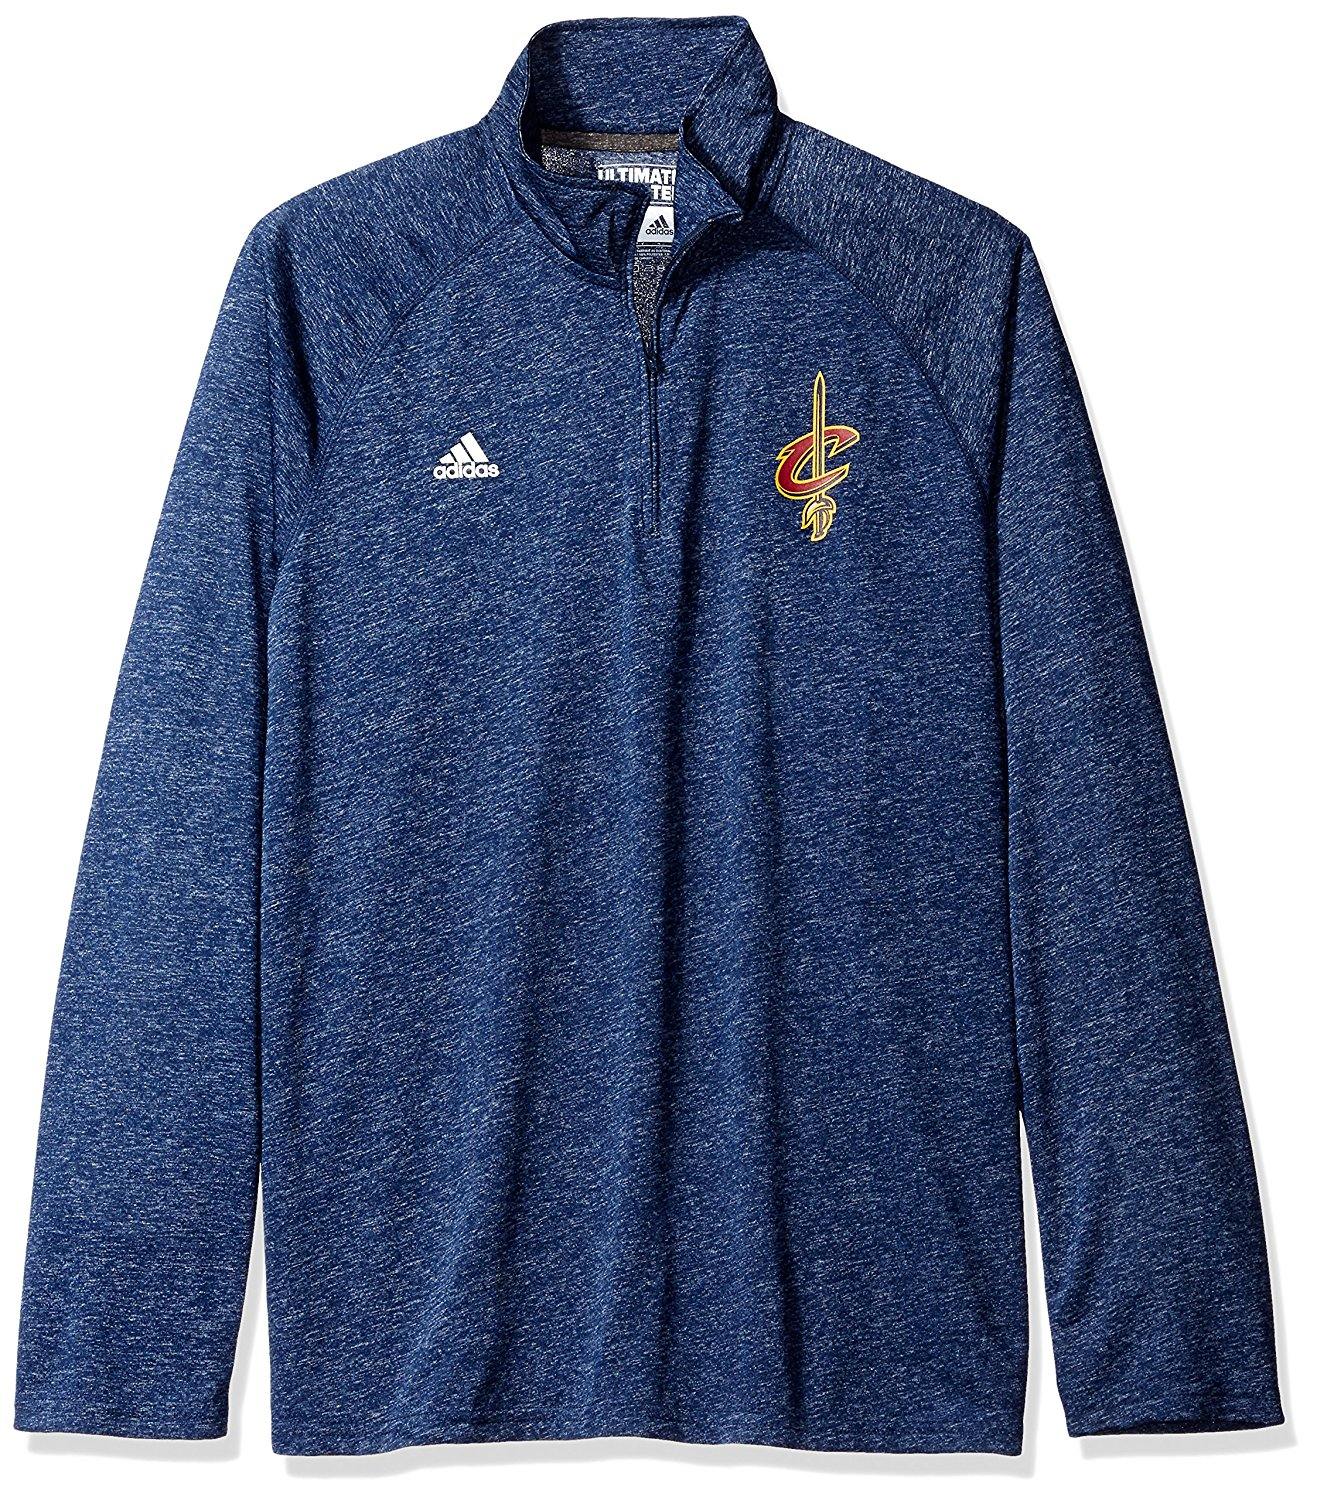 men basketball jacket image